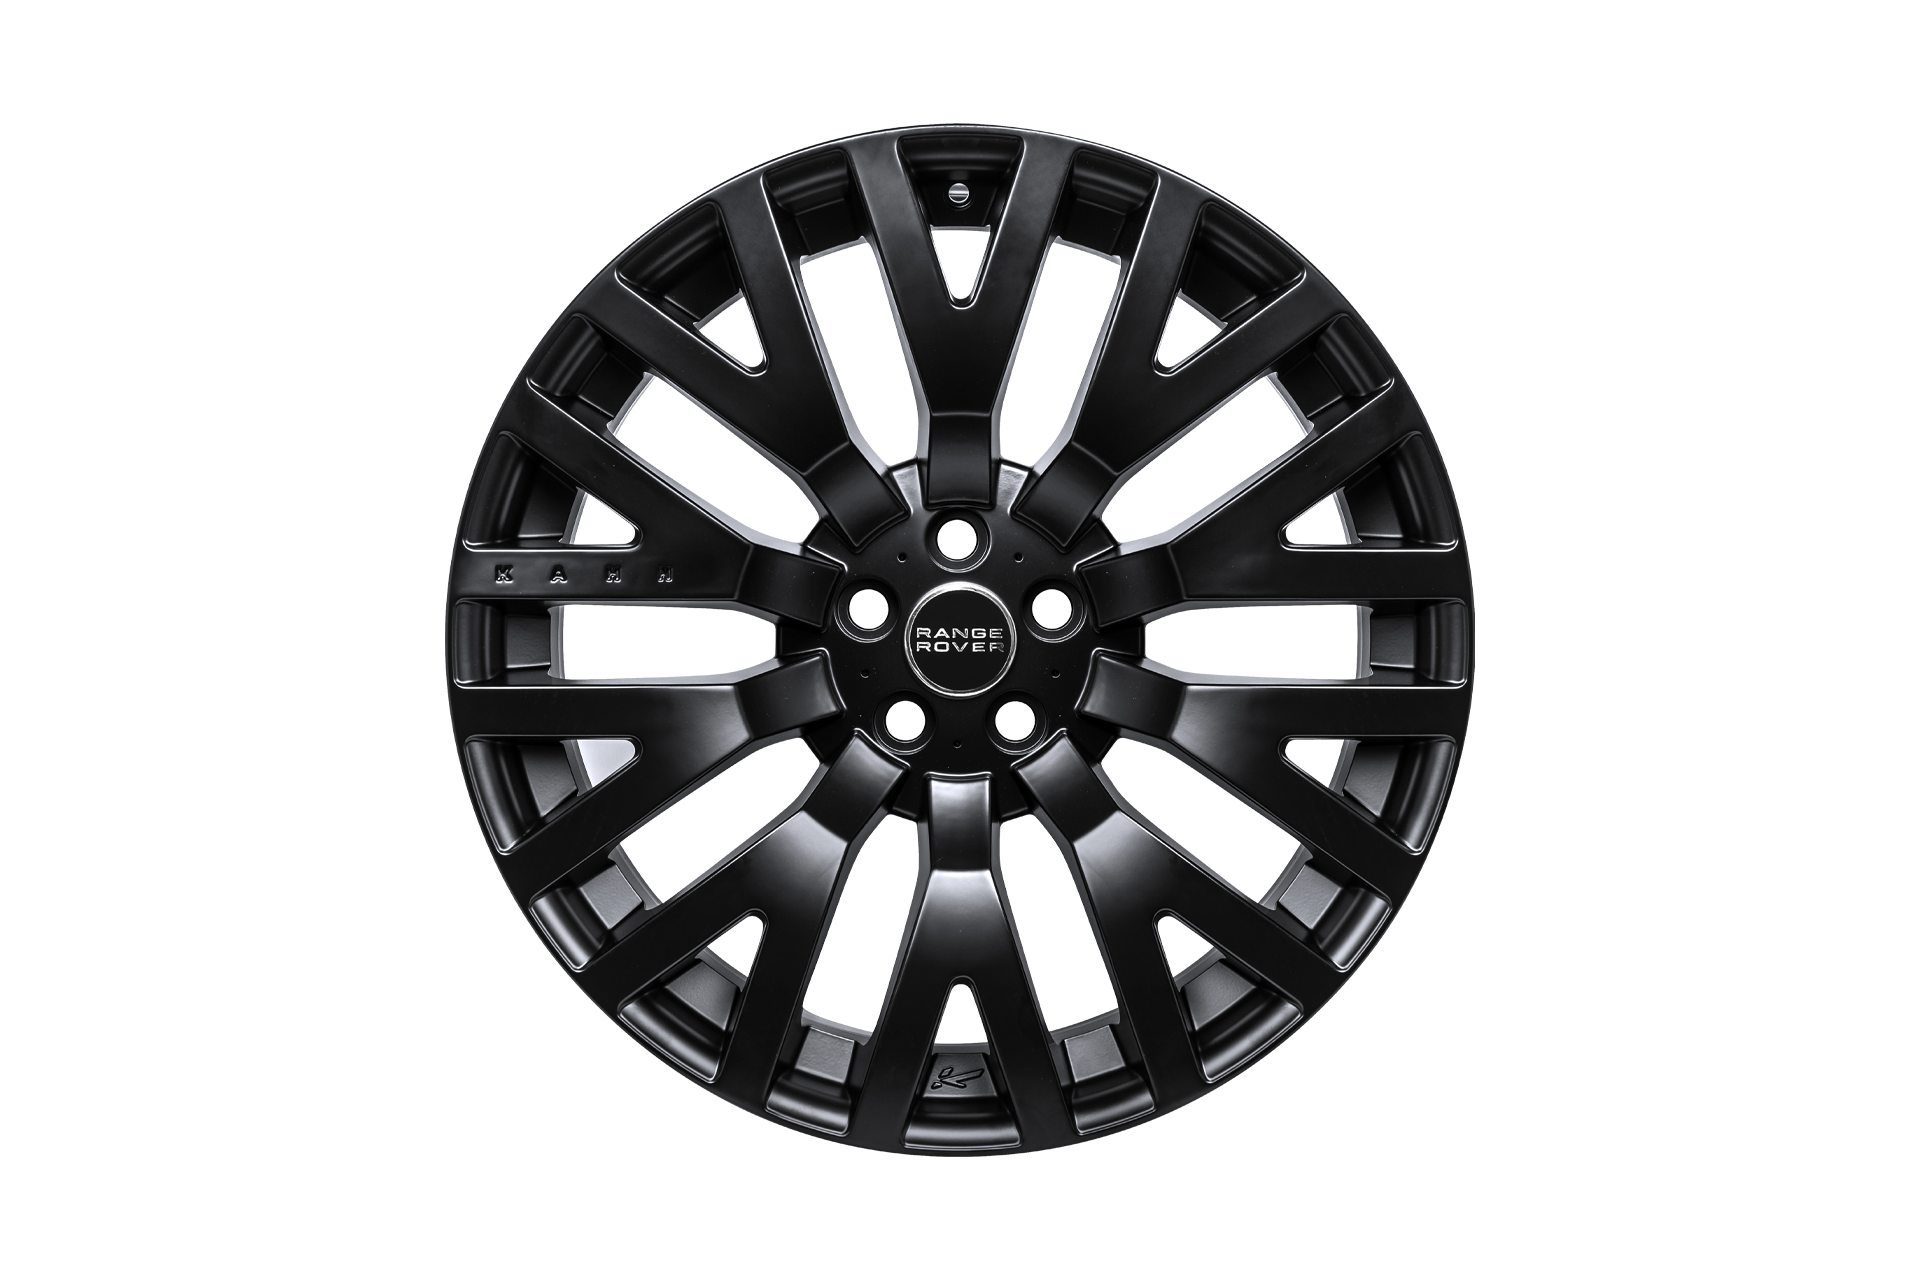 Range Rover Sport (2013-2018) Rs Light Alloy Wheels by Kahn - Image 3851